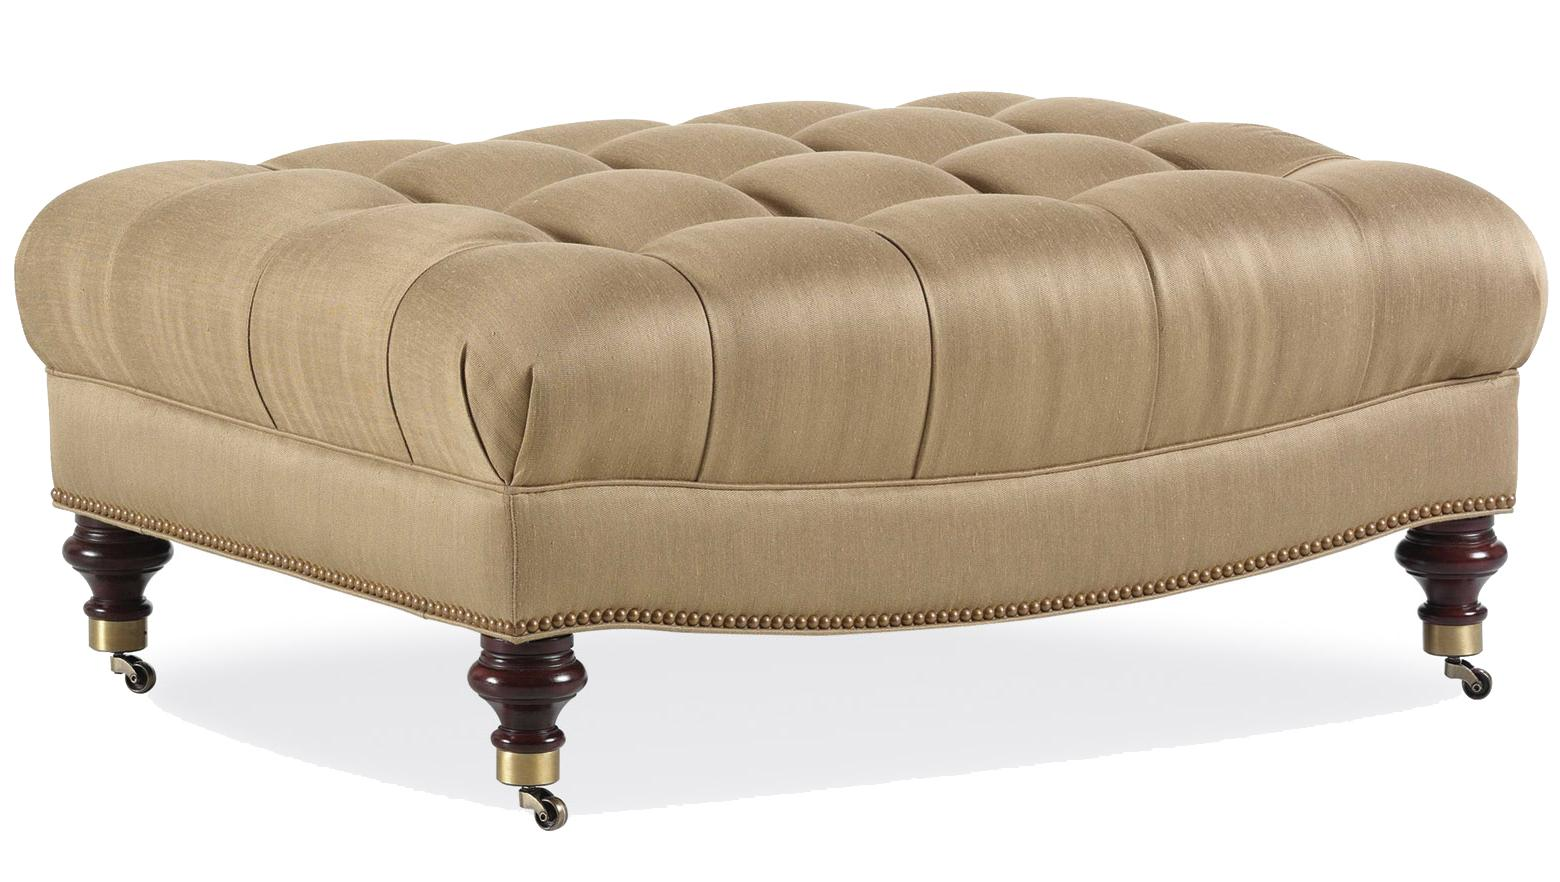 Fine Upholstered Accents Cocktail Ottoman    by Jessica Charles at Alison Craig Home Furnishings